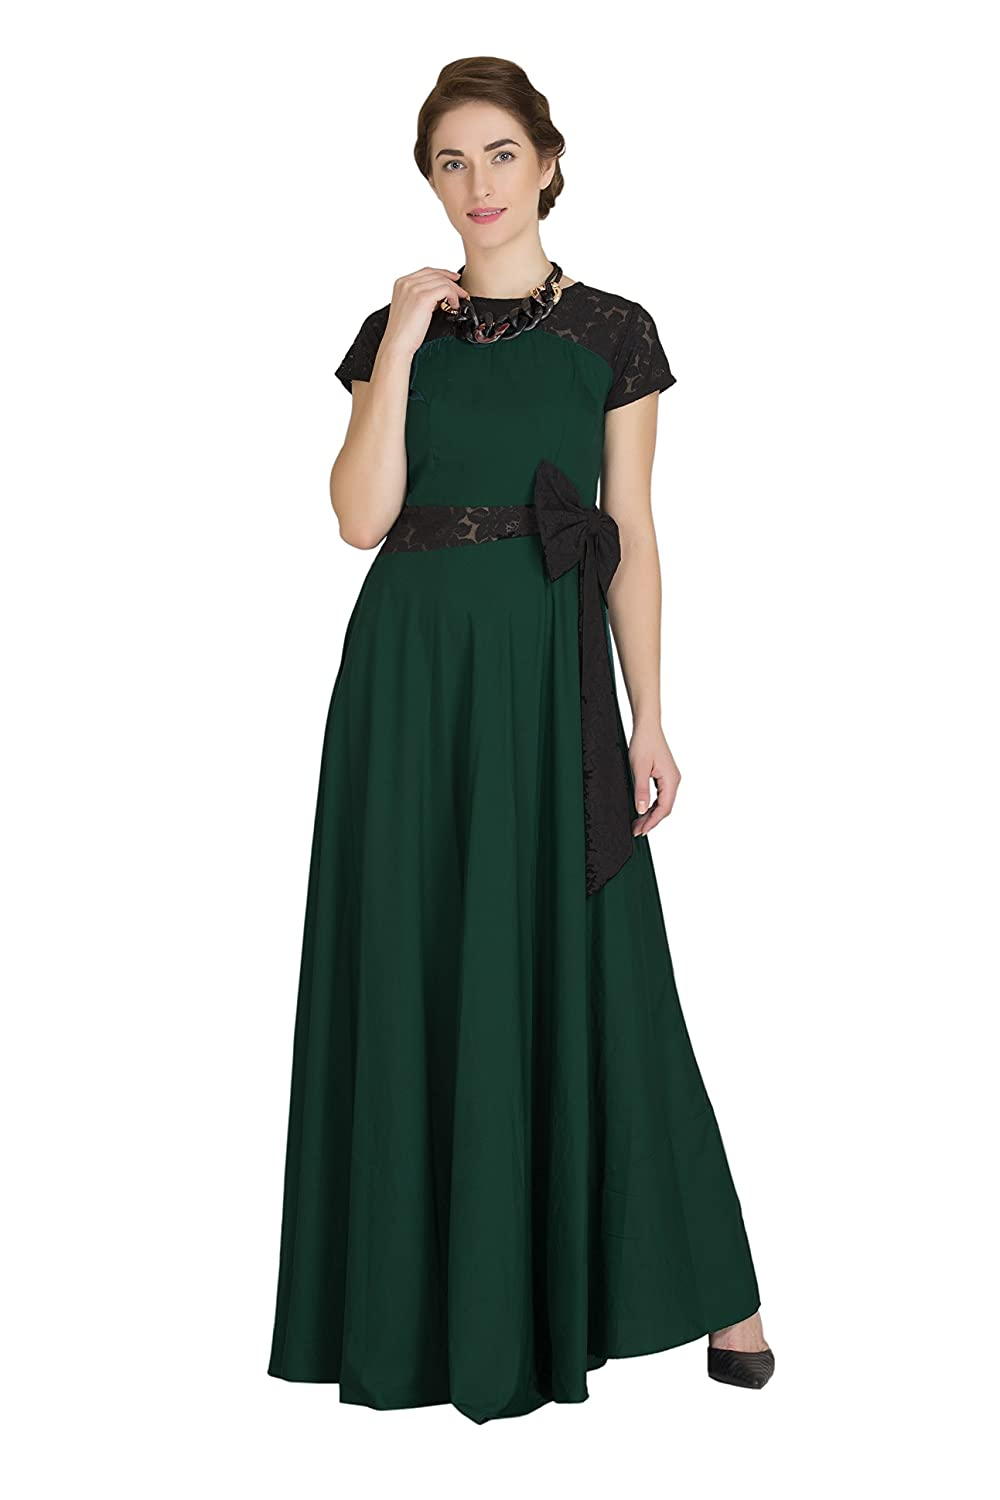 6e003fff608 Raas Prêt Women s Crepe Green Black Flared Maxi Dress Gown with Side Bow  Detailing  Amazon.in  Clothing   Accessories